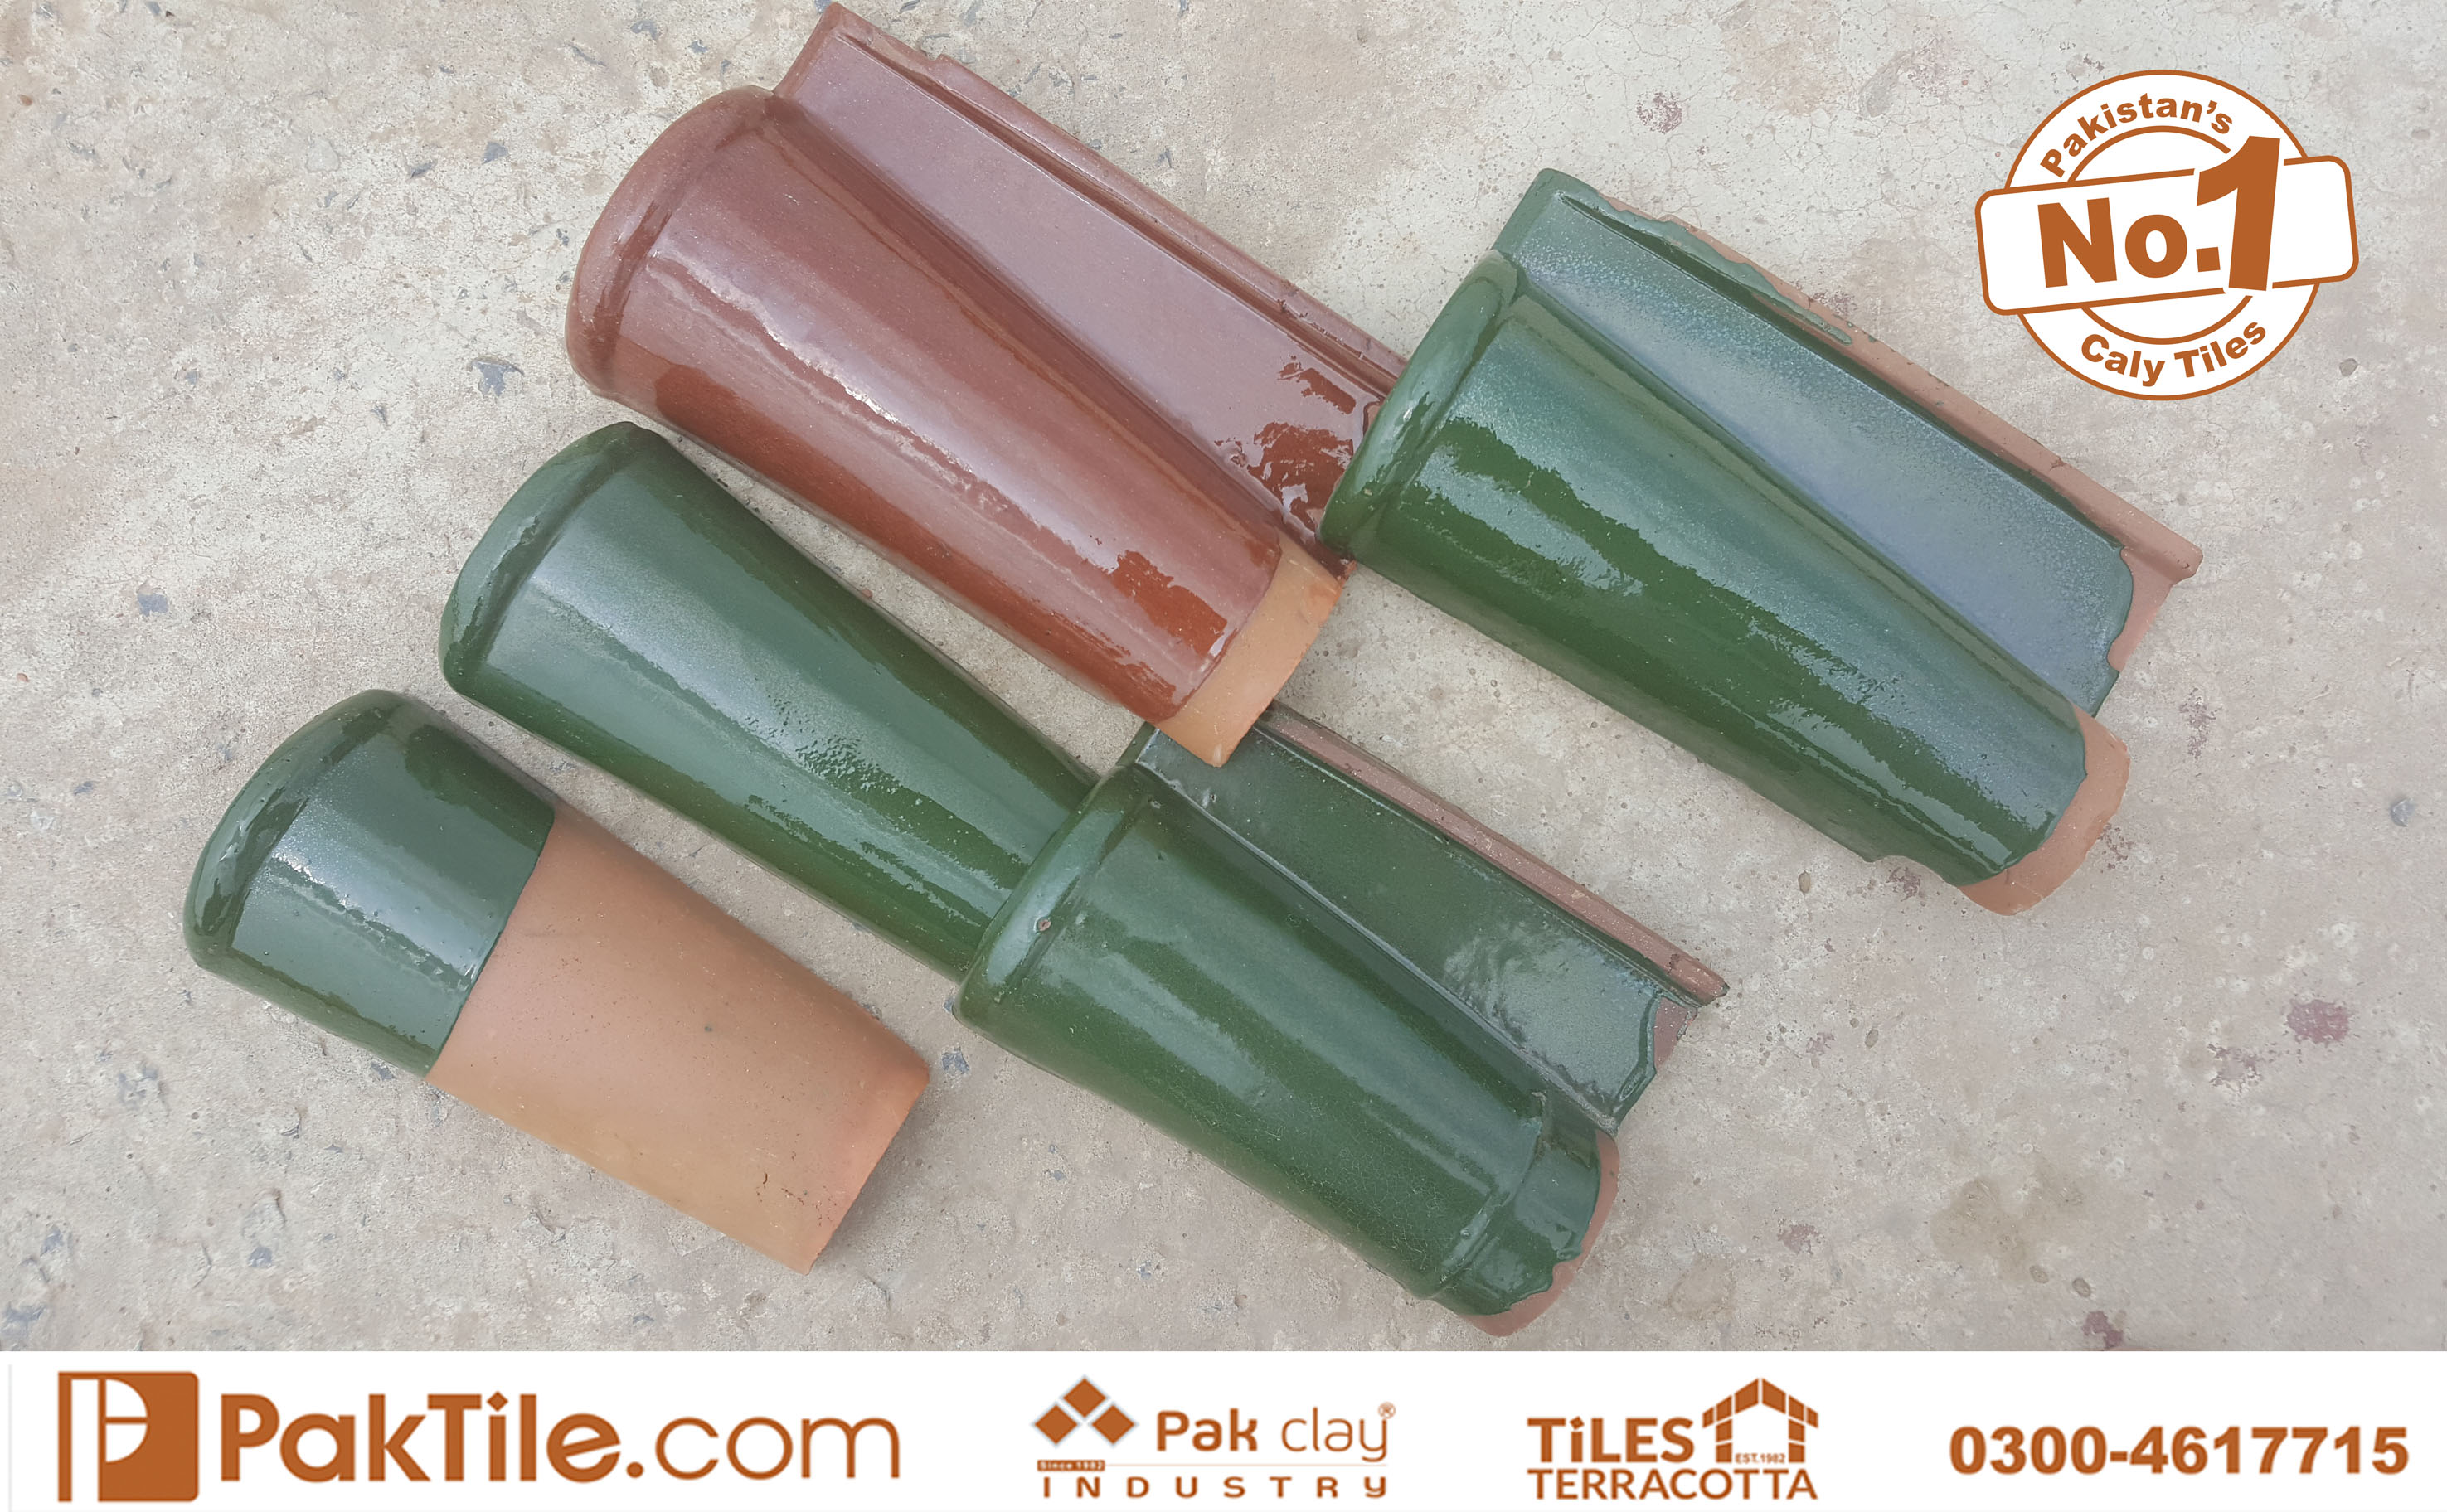 7 Pak clay terracotta ceramic glazed irani roofing materials shingles tiles price in pakistan images